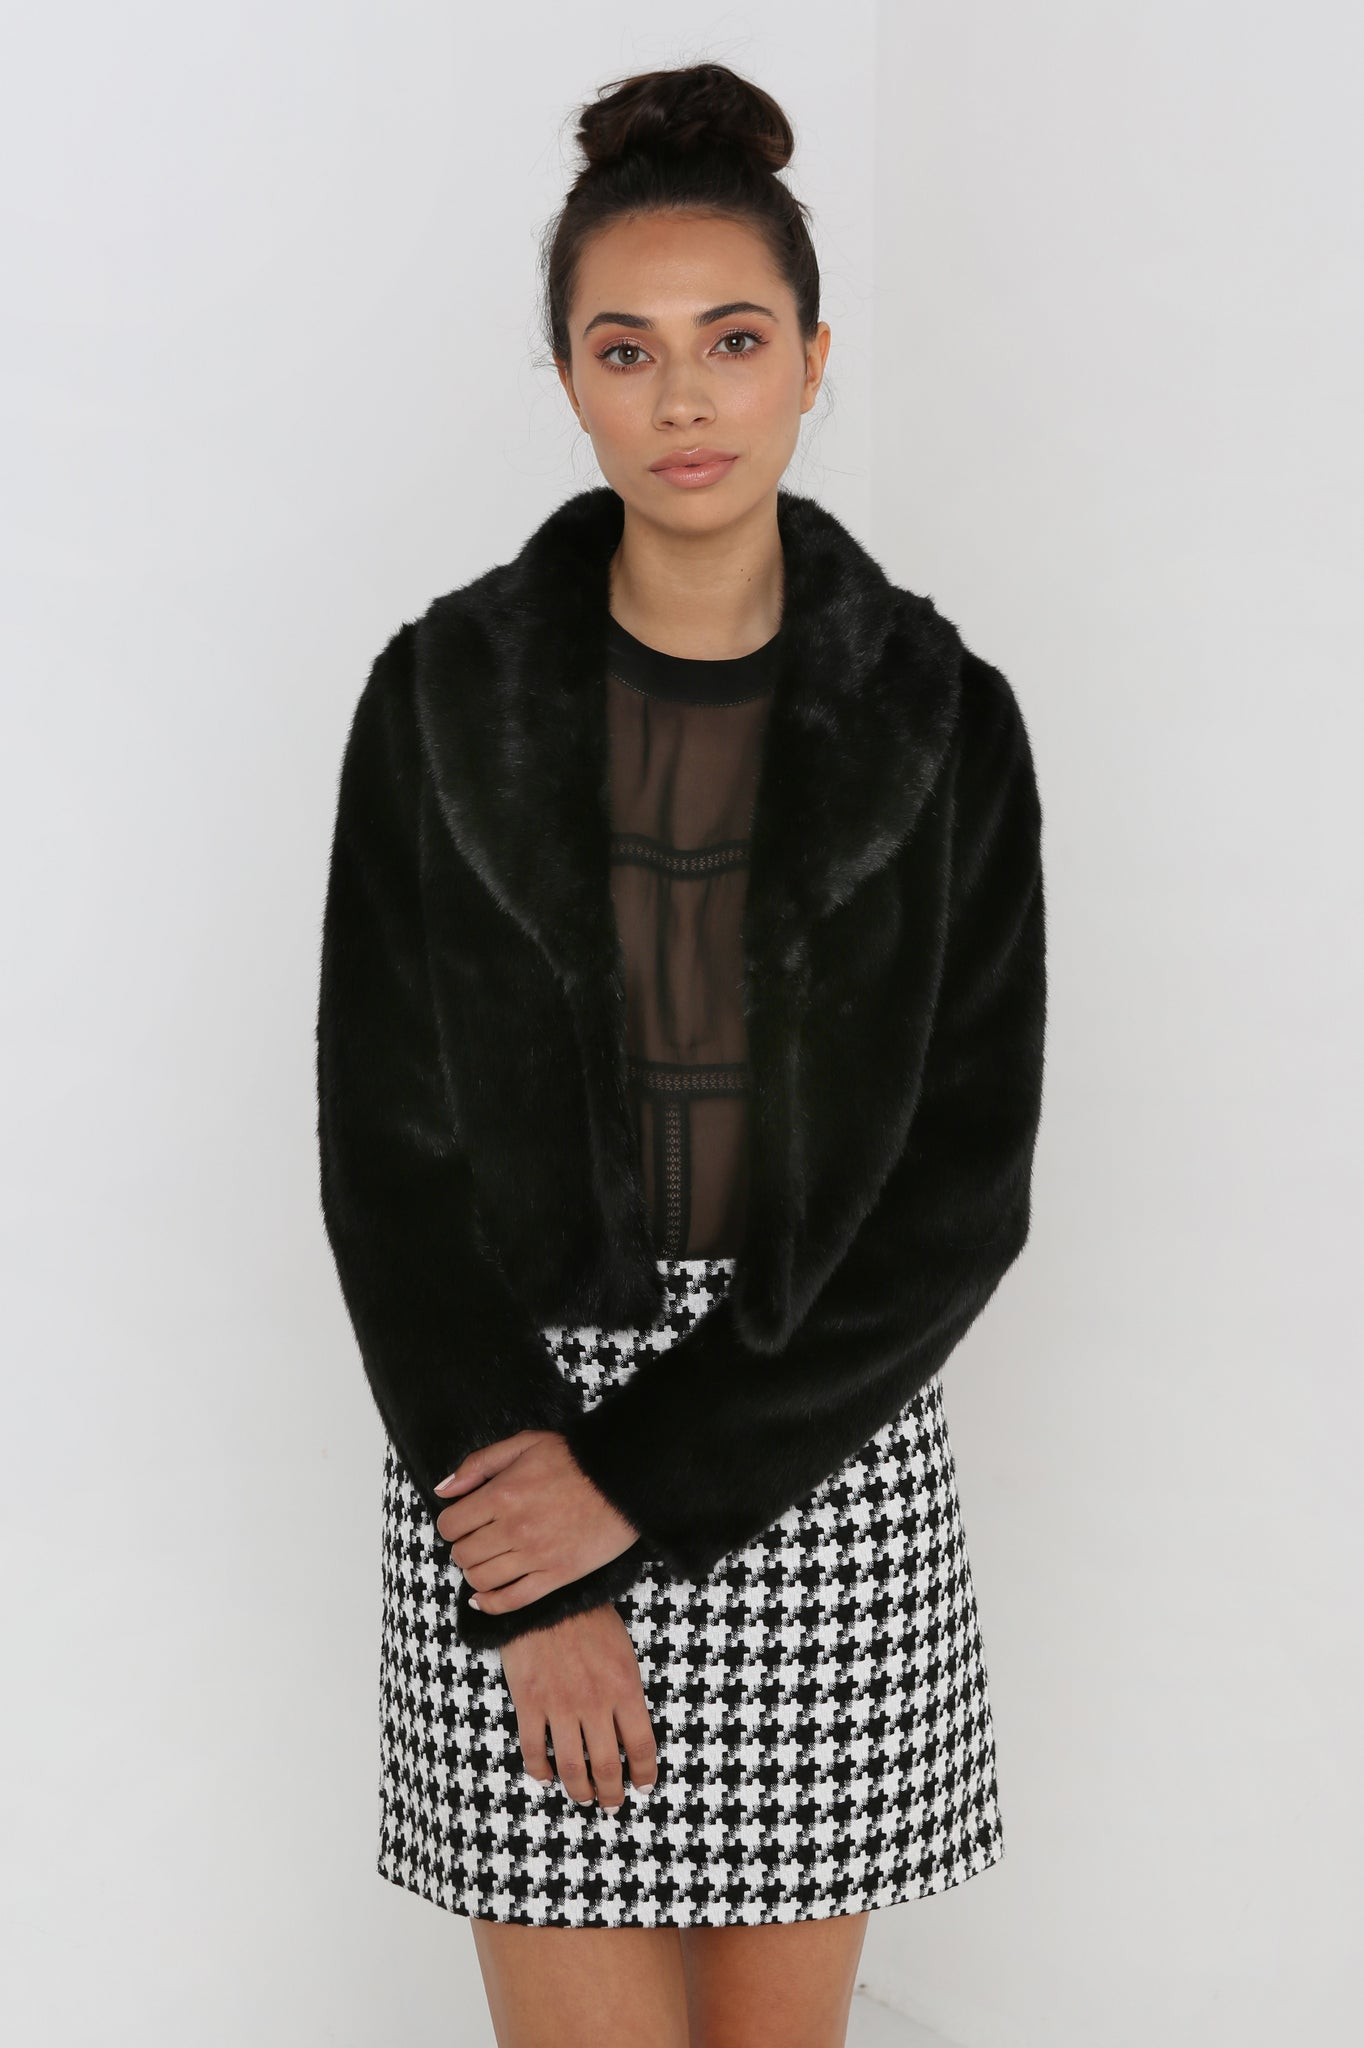 Short & Sweet Jacket in Black